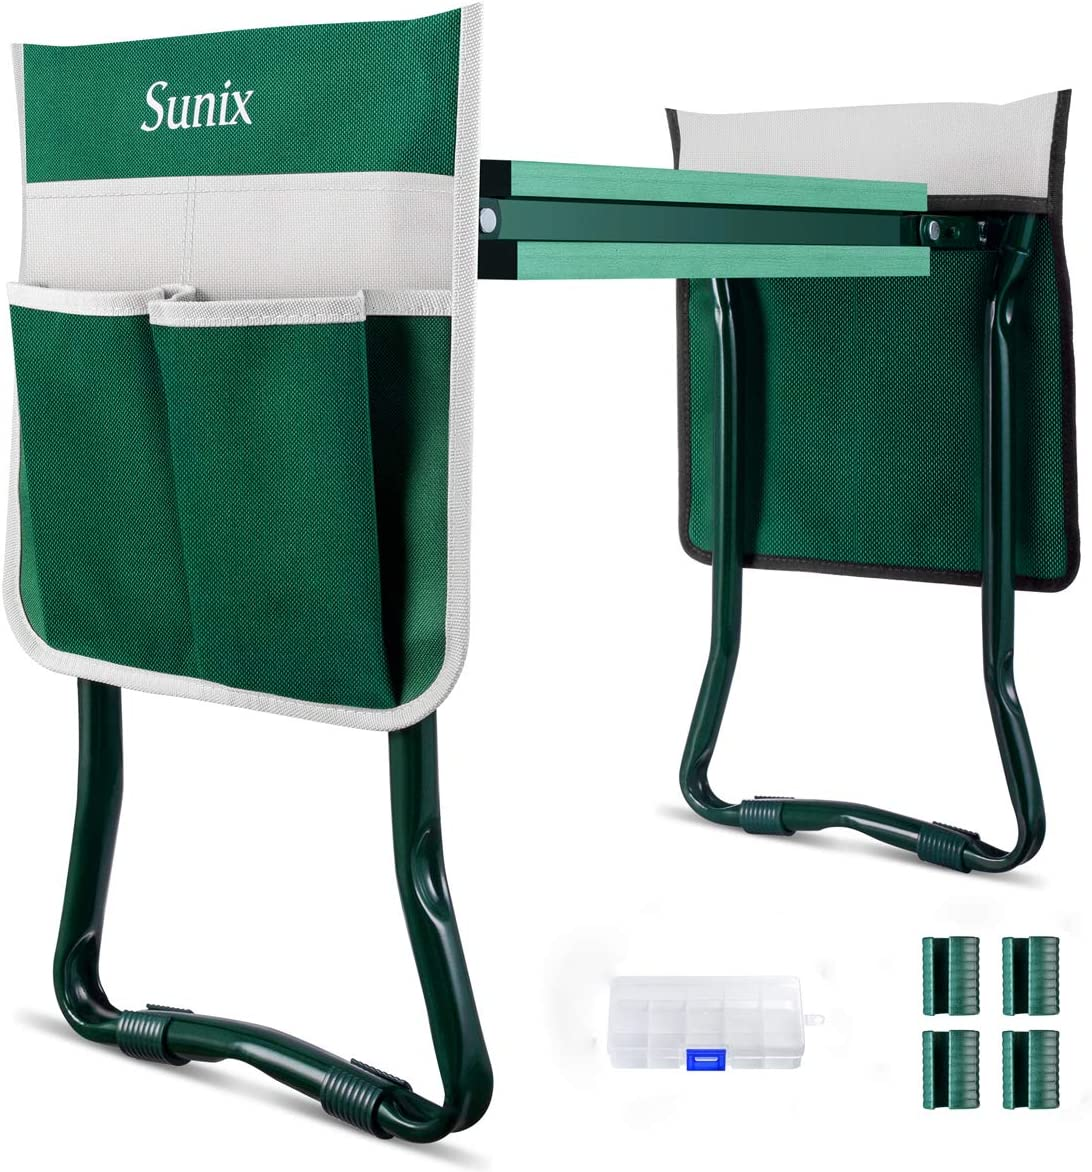 Sunix Folding Garden Kneeler and Seat with 2 Tool Pouches